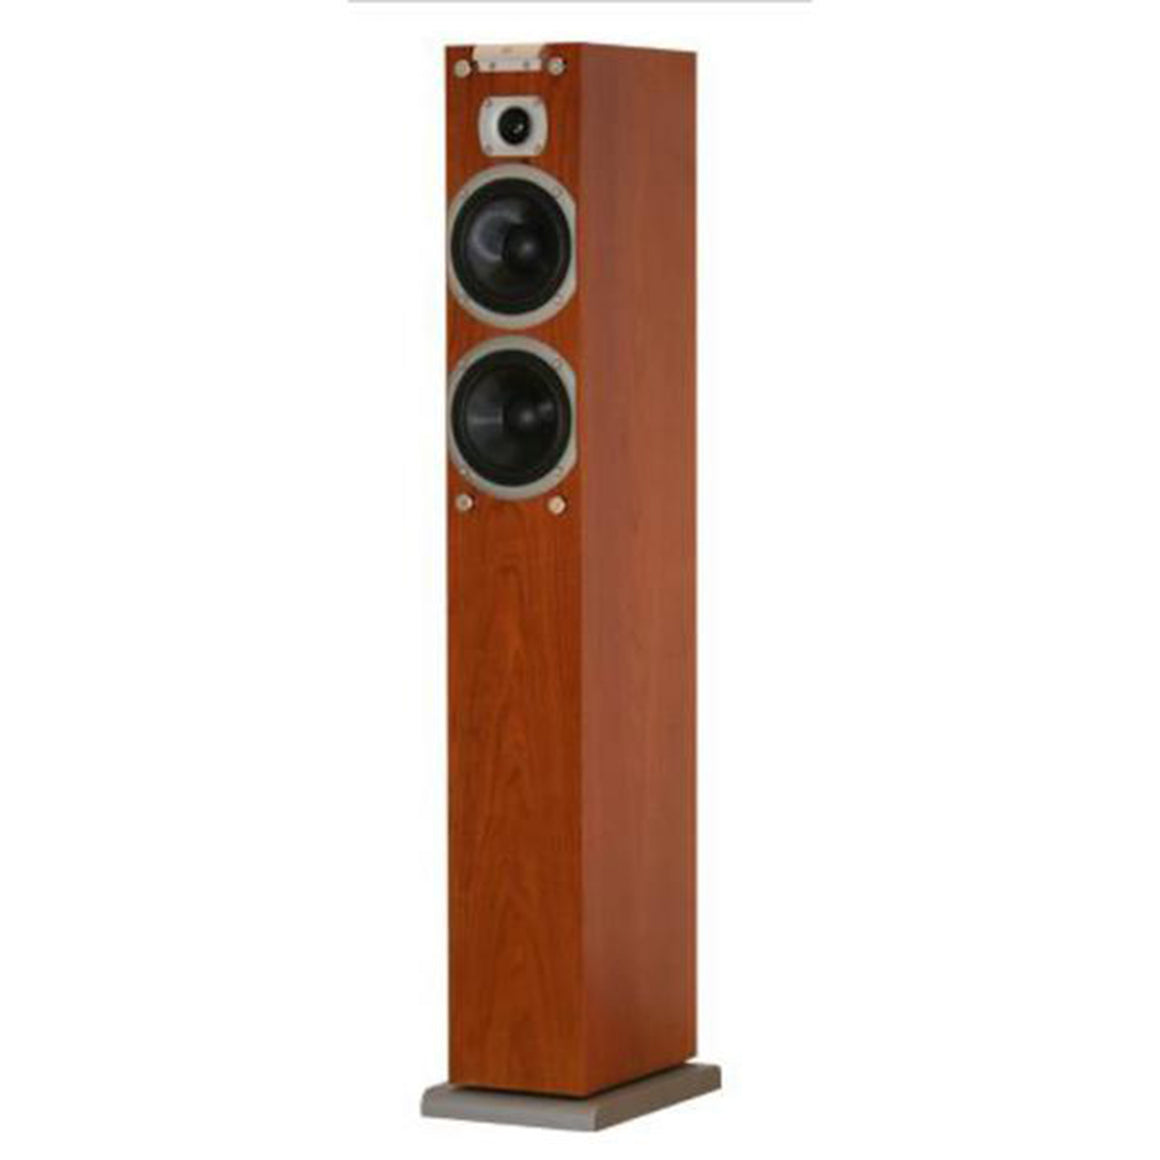 Audiovector Ki 3 Floor Standing Speakers at Melbourne Hi Fi, Australia